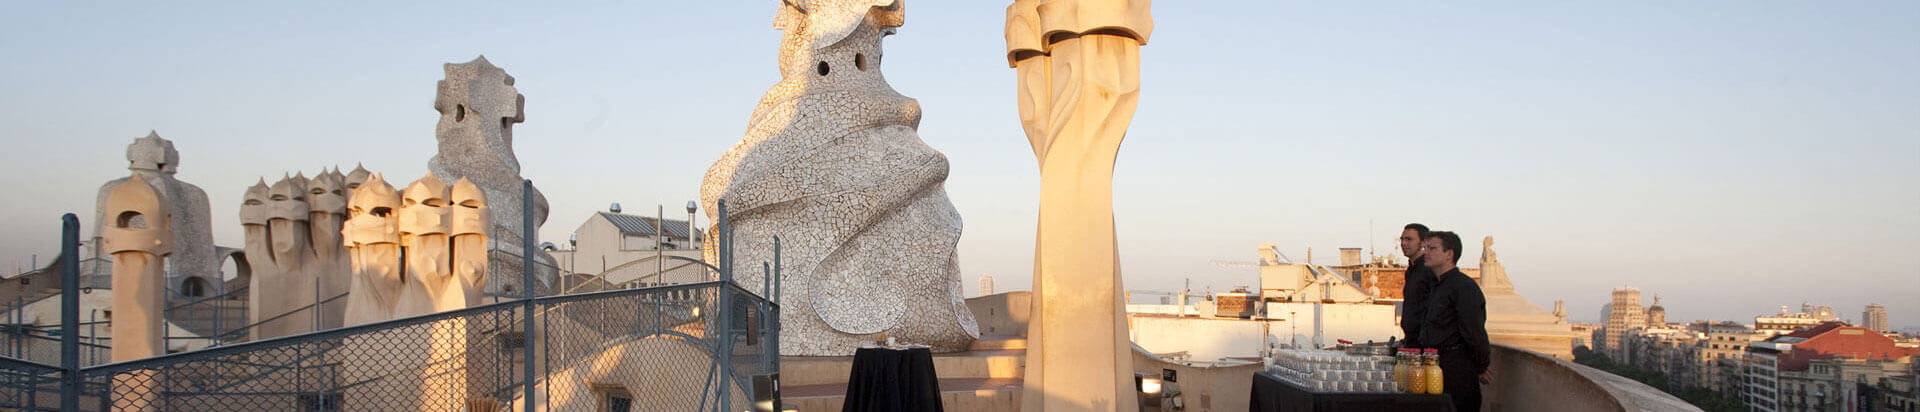 pedrera special exclusive tours barcelona